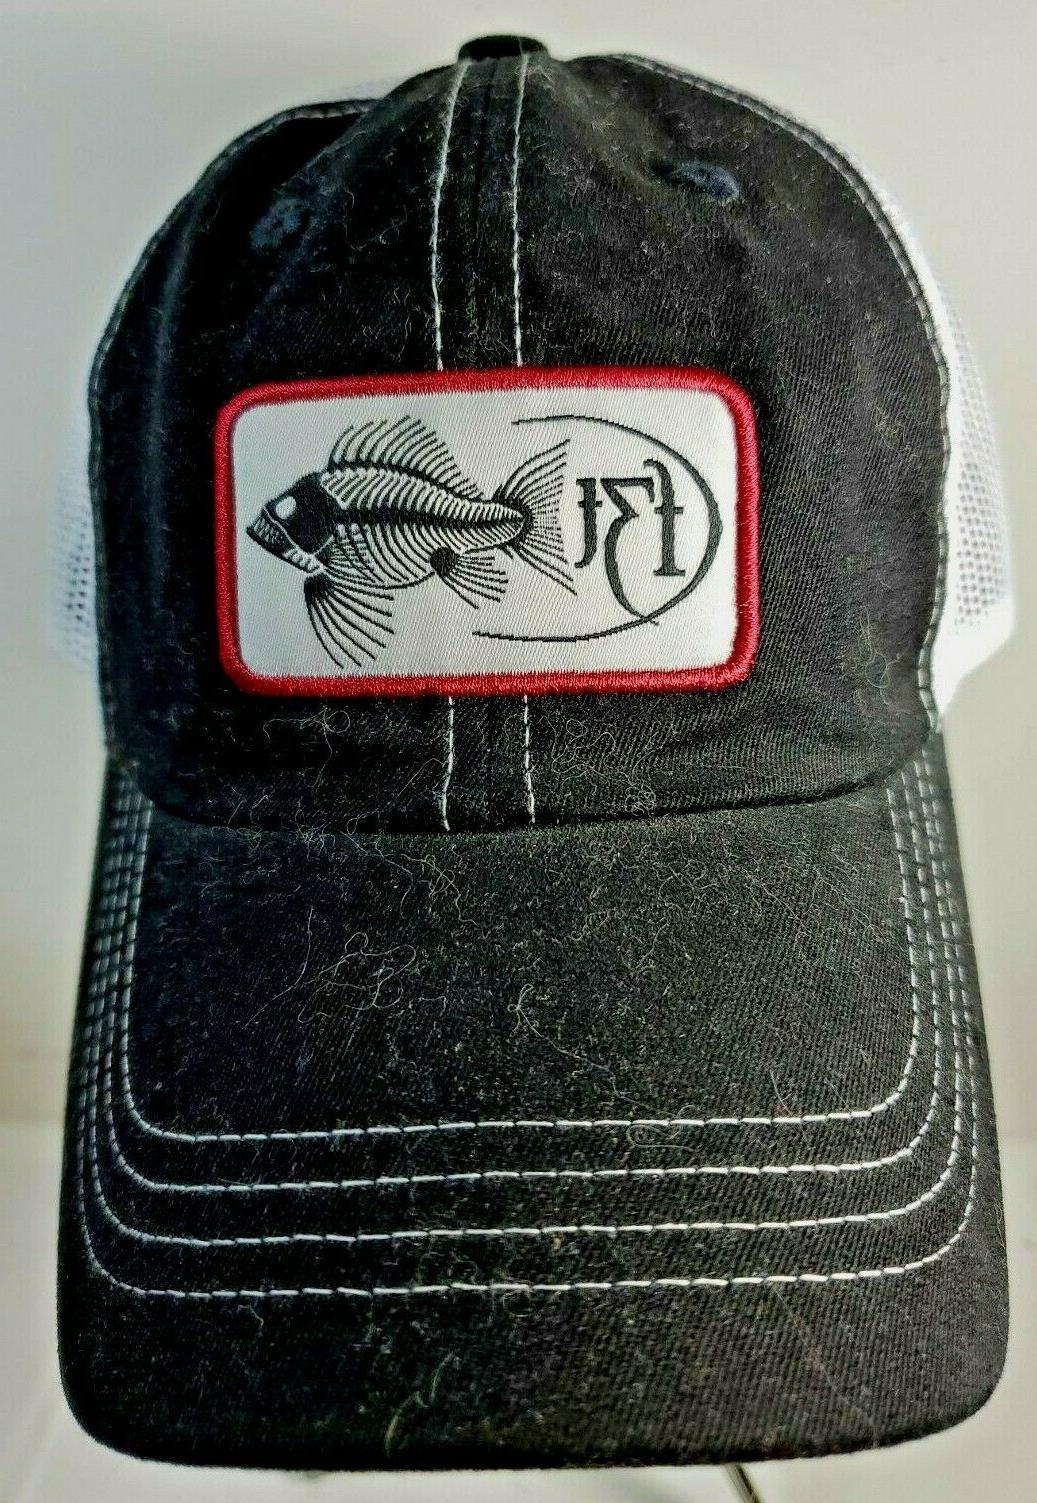 f3t embroidered logo patch hat fishing outdoor